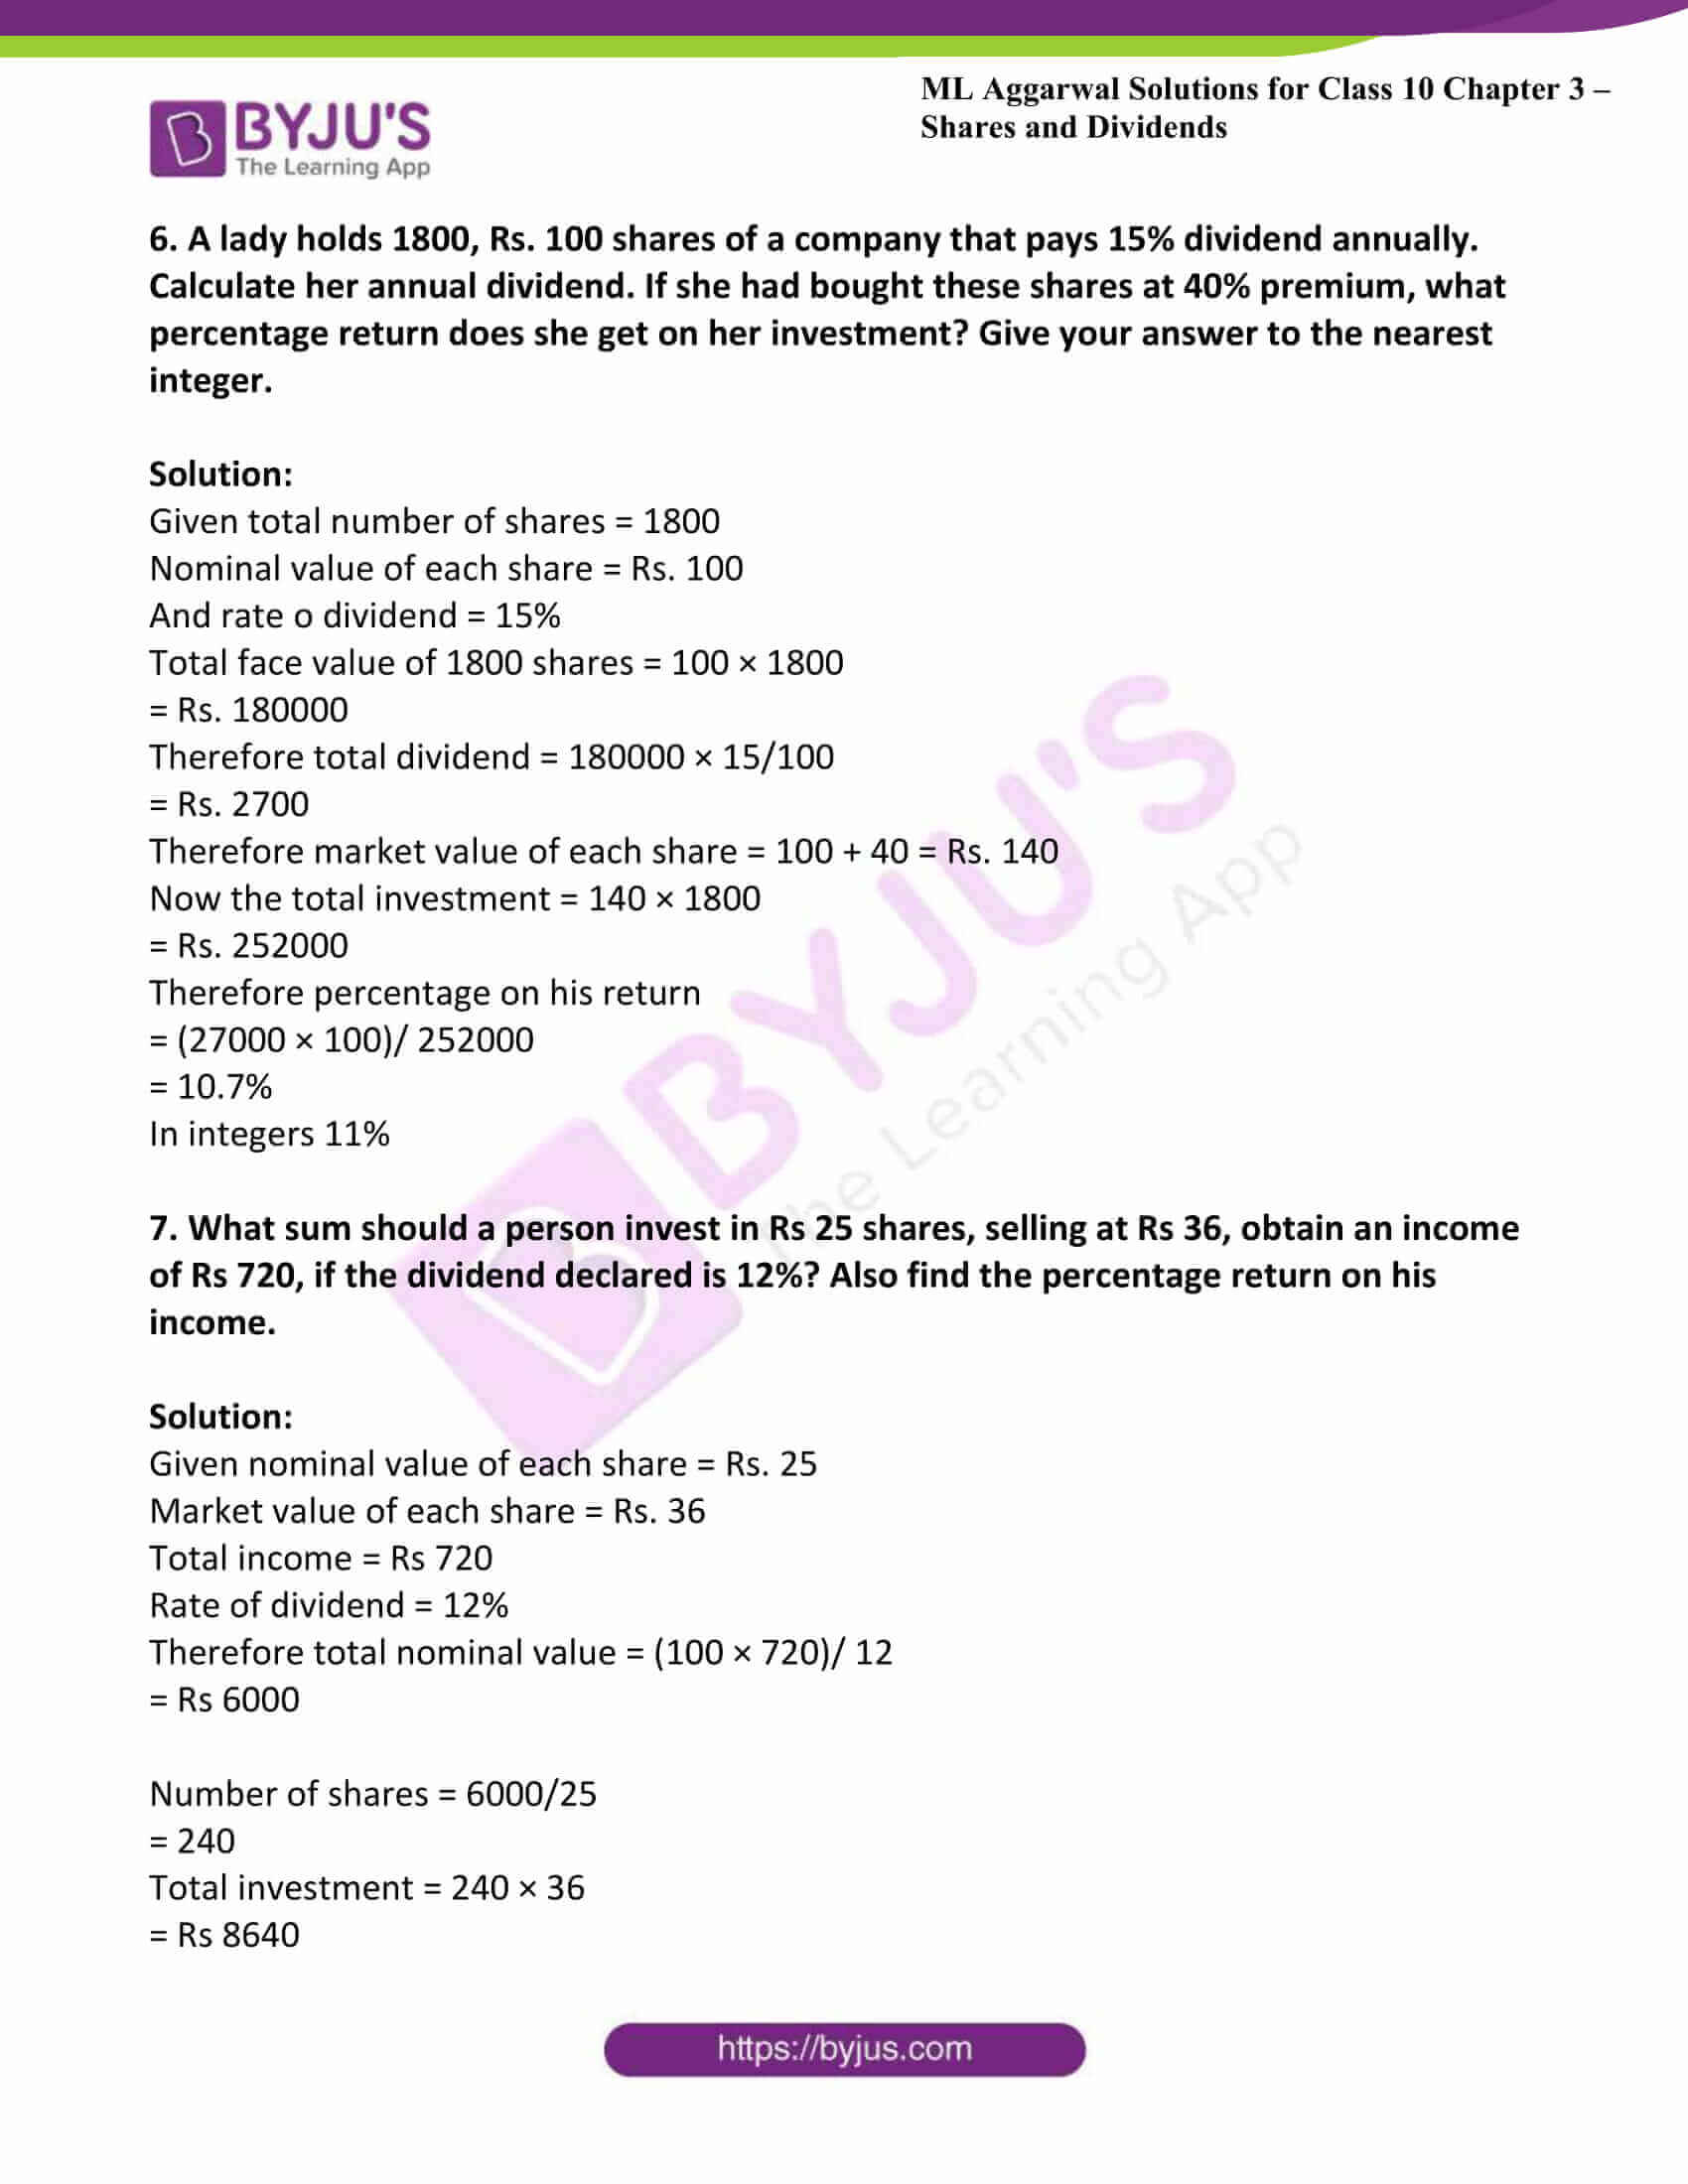 ml aggarwal solutions class 10 maths chapter 3 03